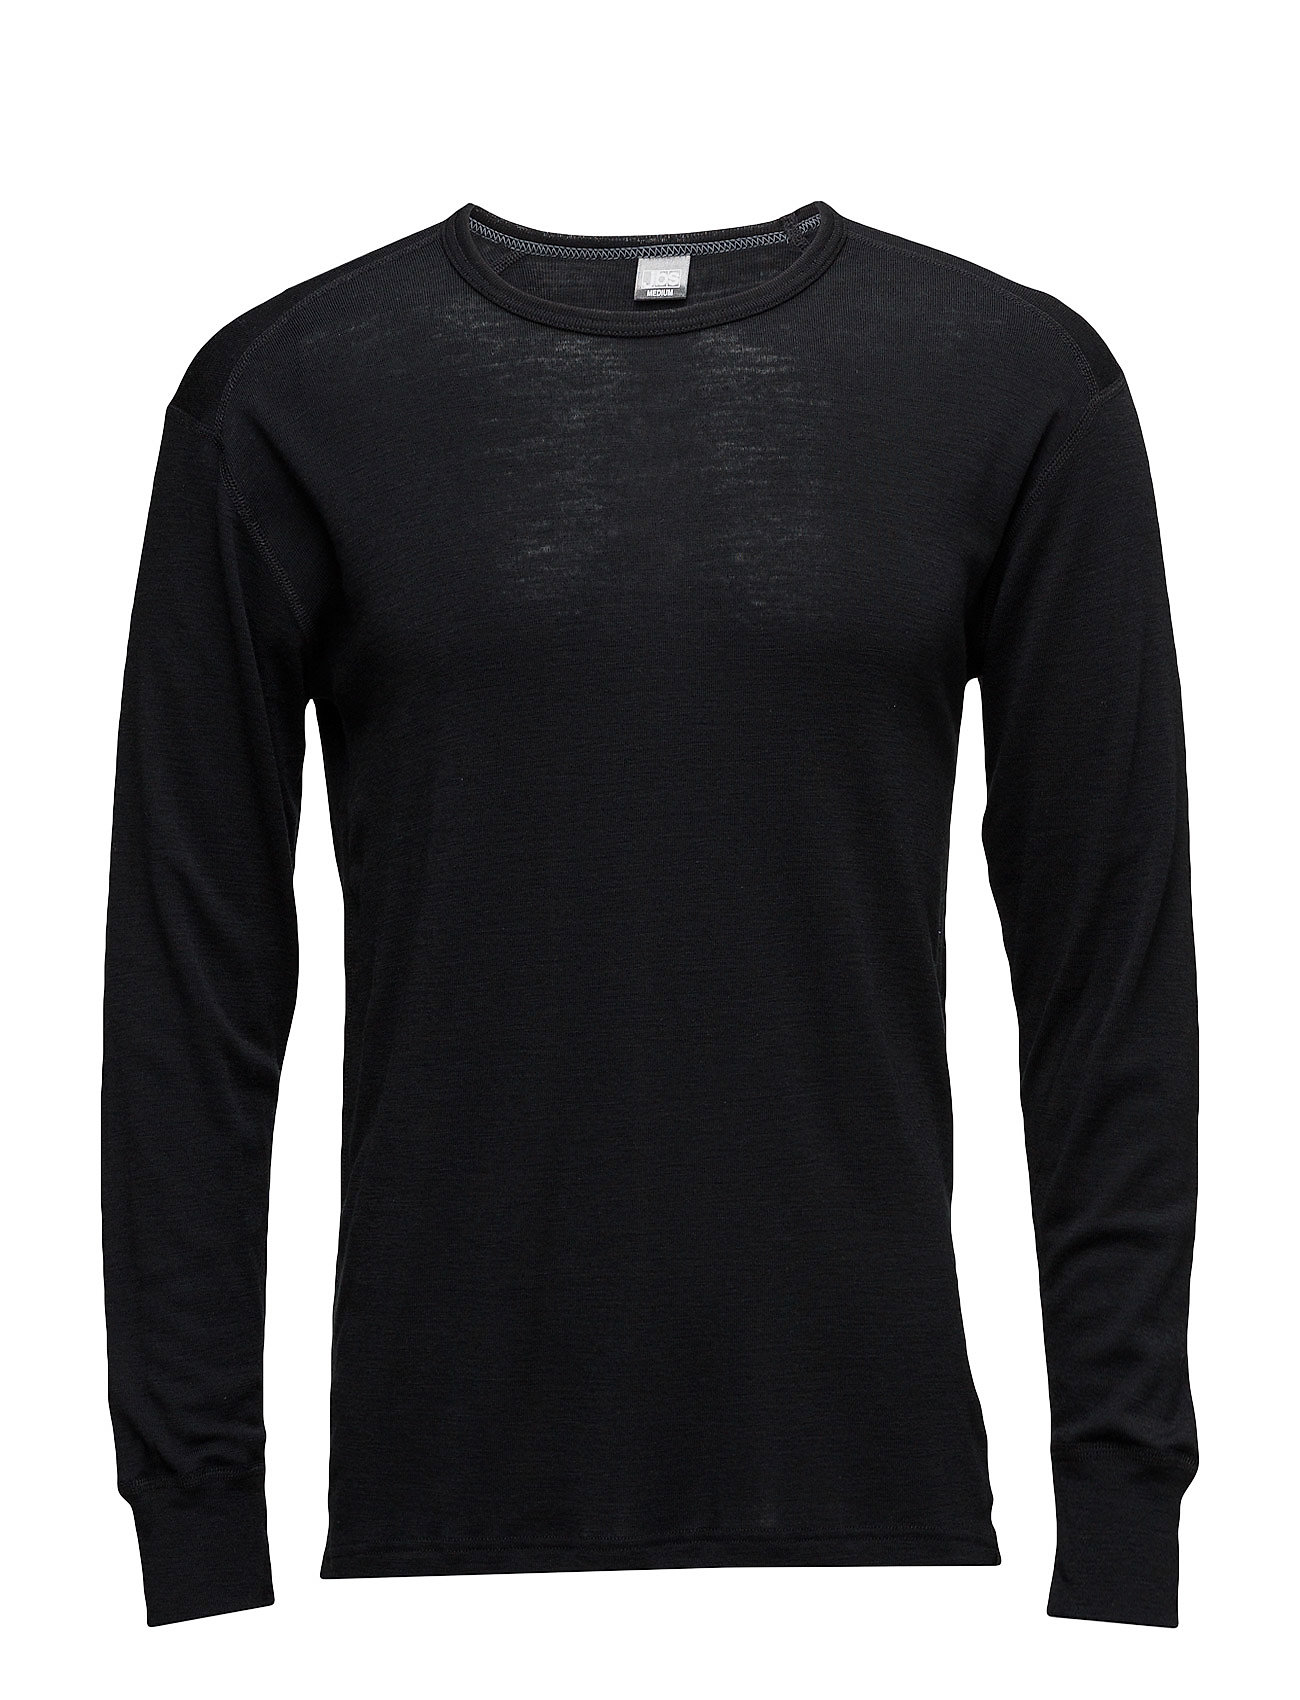 JBS JBS, t-shirt long sleeve - BLACK